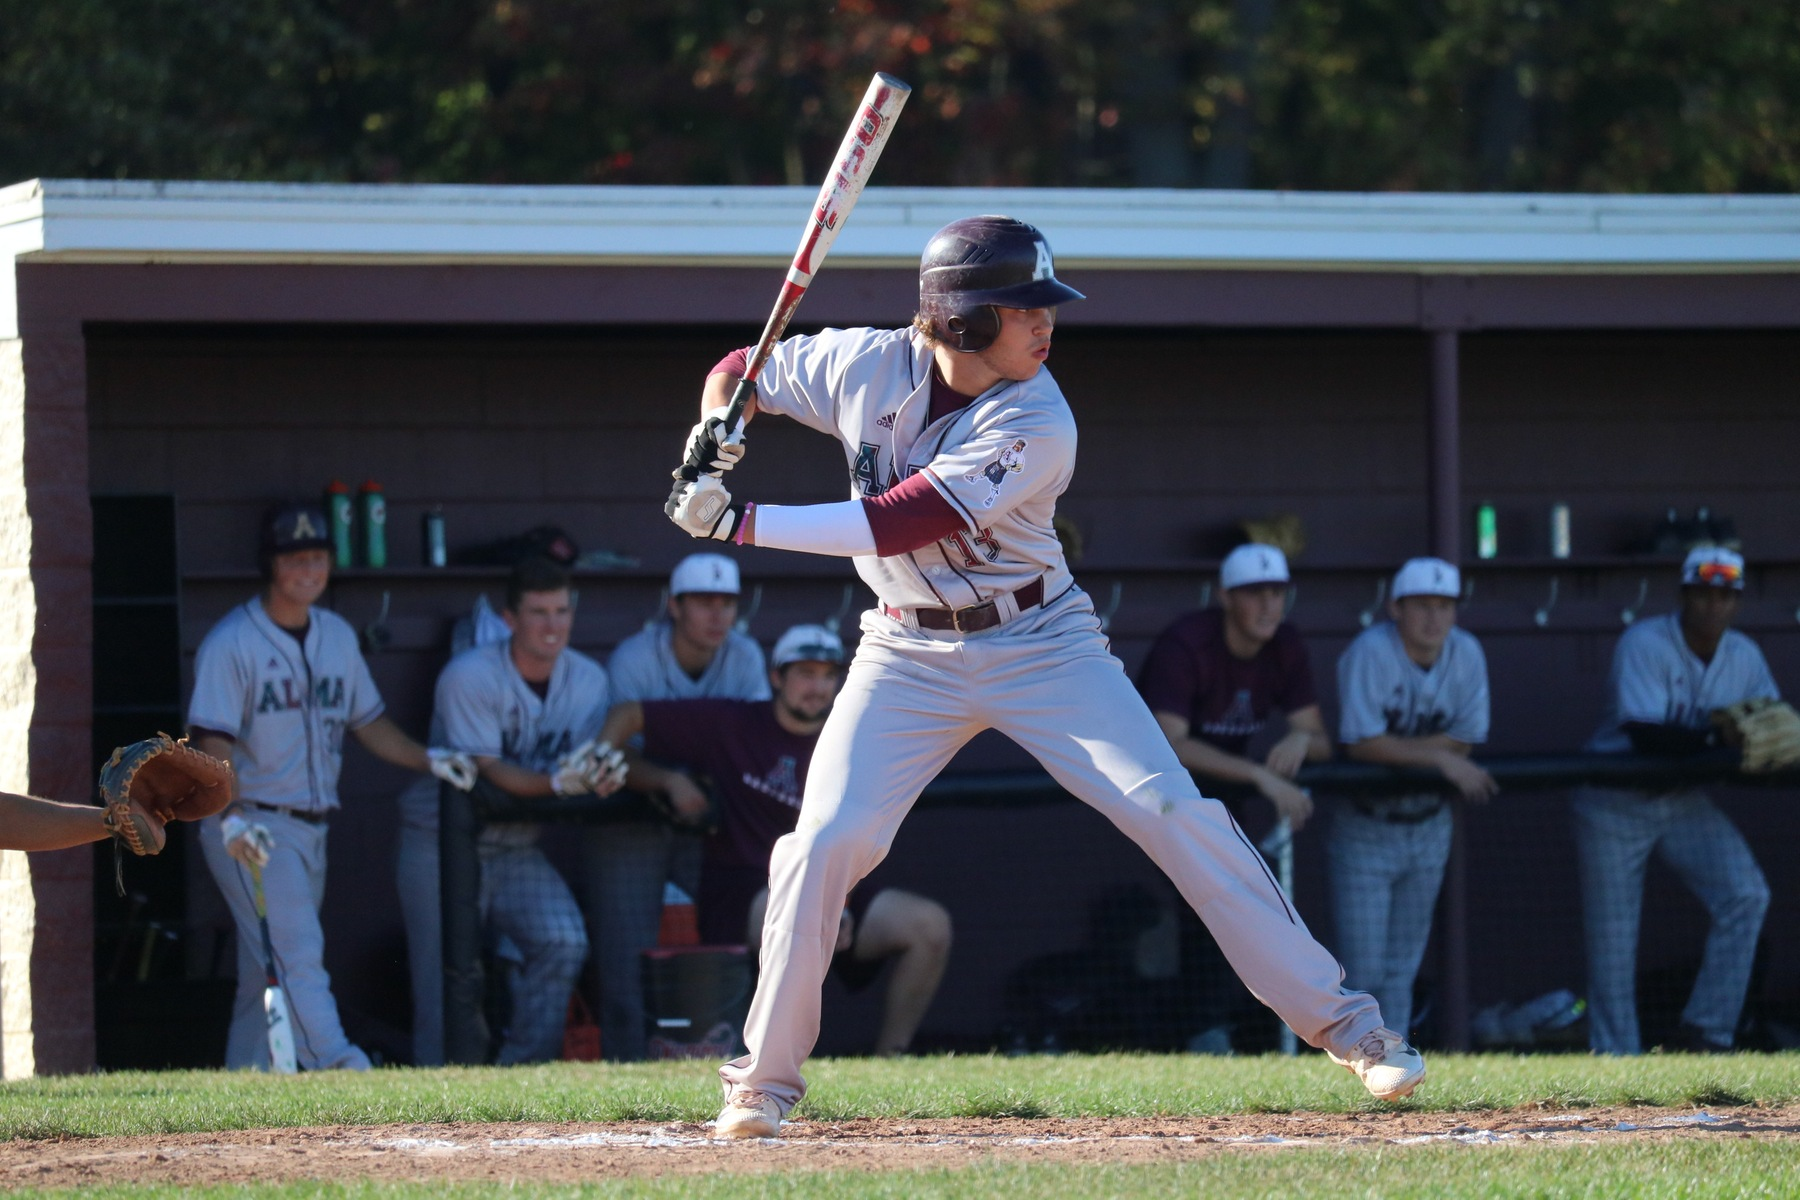 Acker named MIAA Player of the Week